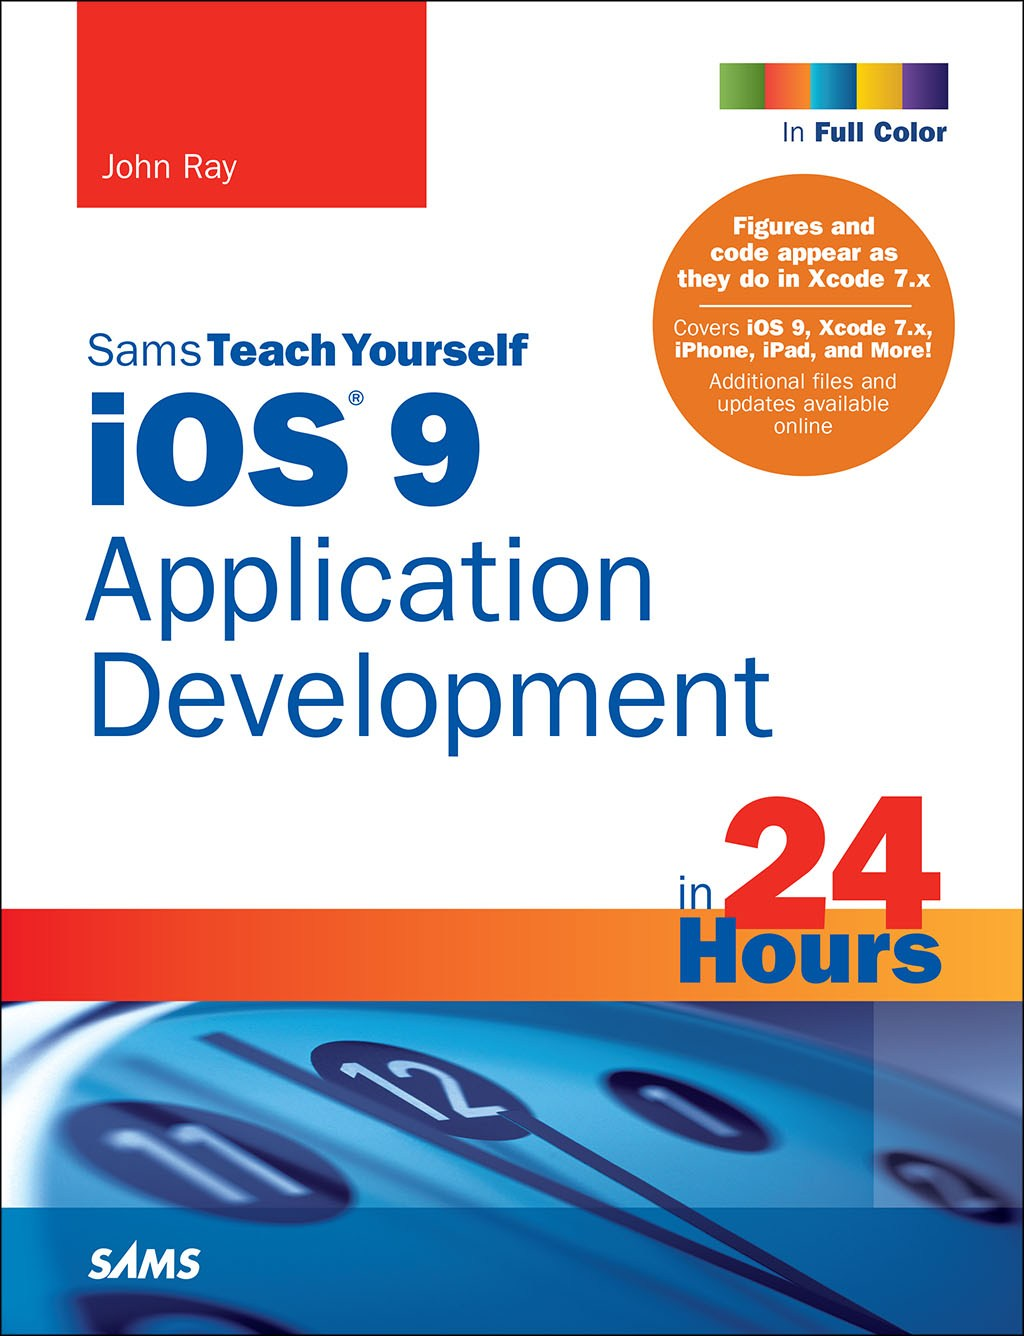 Teach Yourself iOS Development in 24 Hours